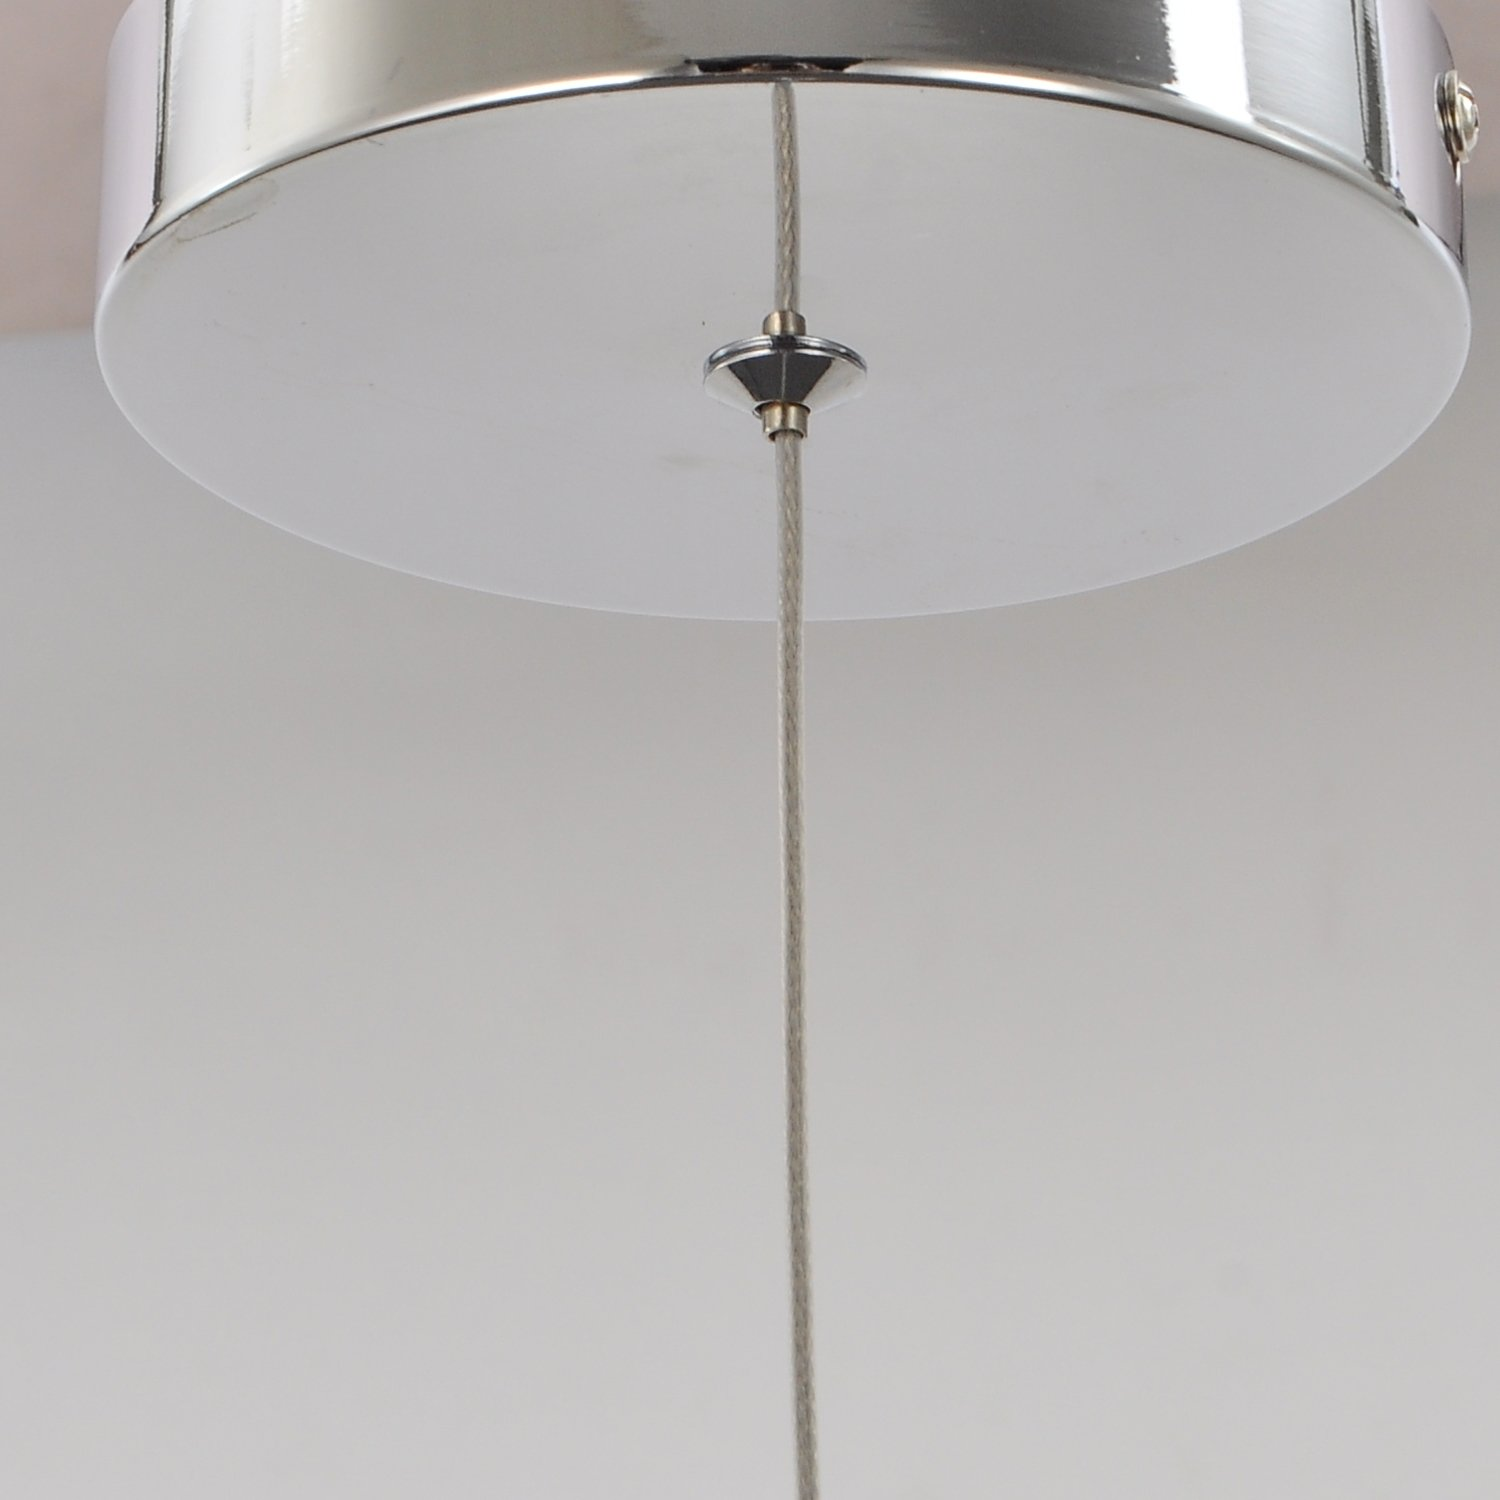 Unitary Brand Modern Nature White LED Acrylic Pendant Light Max 5w Plating Finish by Unitary (Image #6)